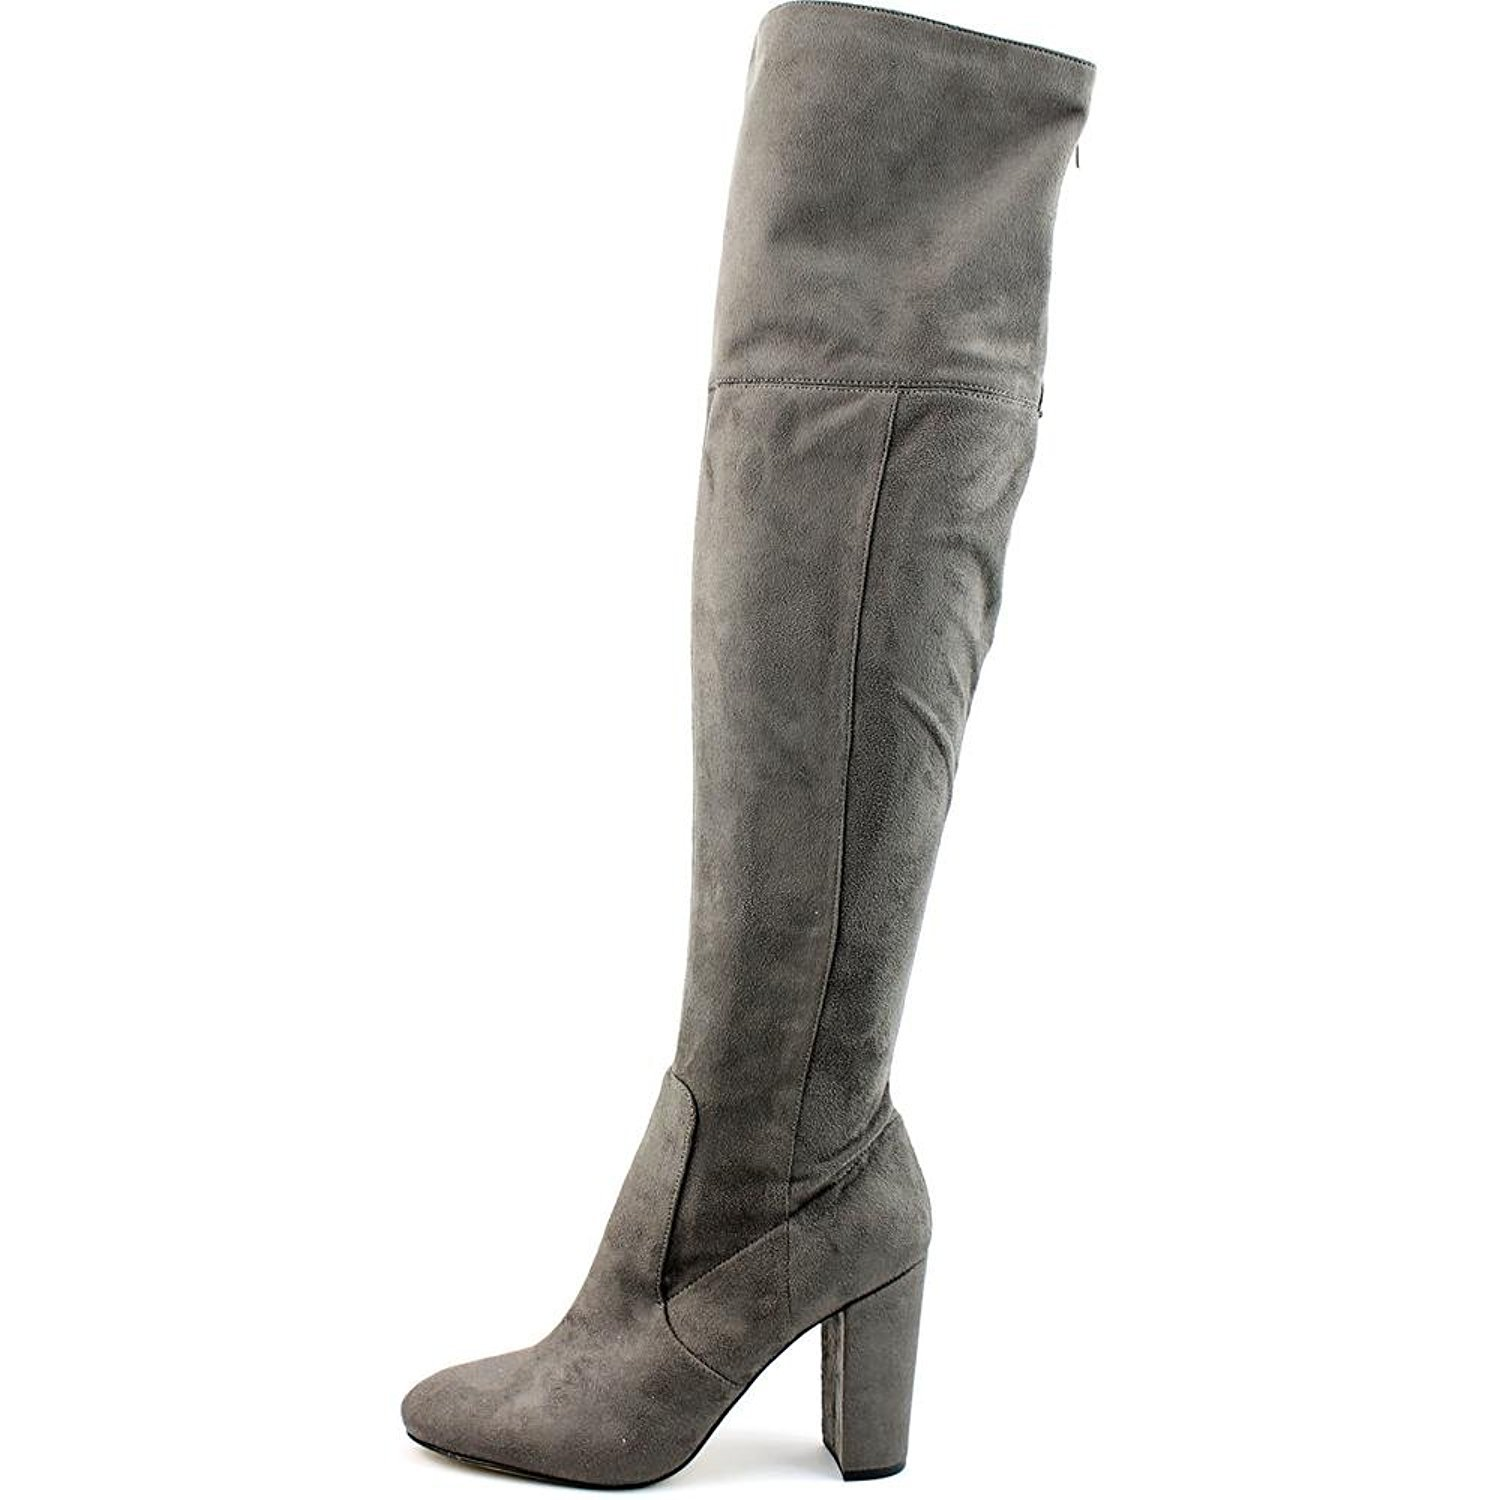 Ivanka Trump Rylee Rear Zip Over The Knee Boots, Dark Gray, 8.5 US by Ivanka Trump (Image #5)